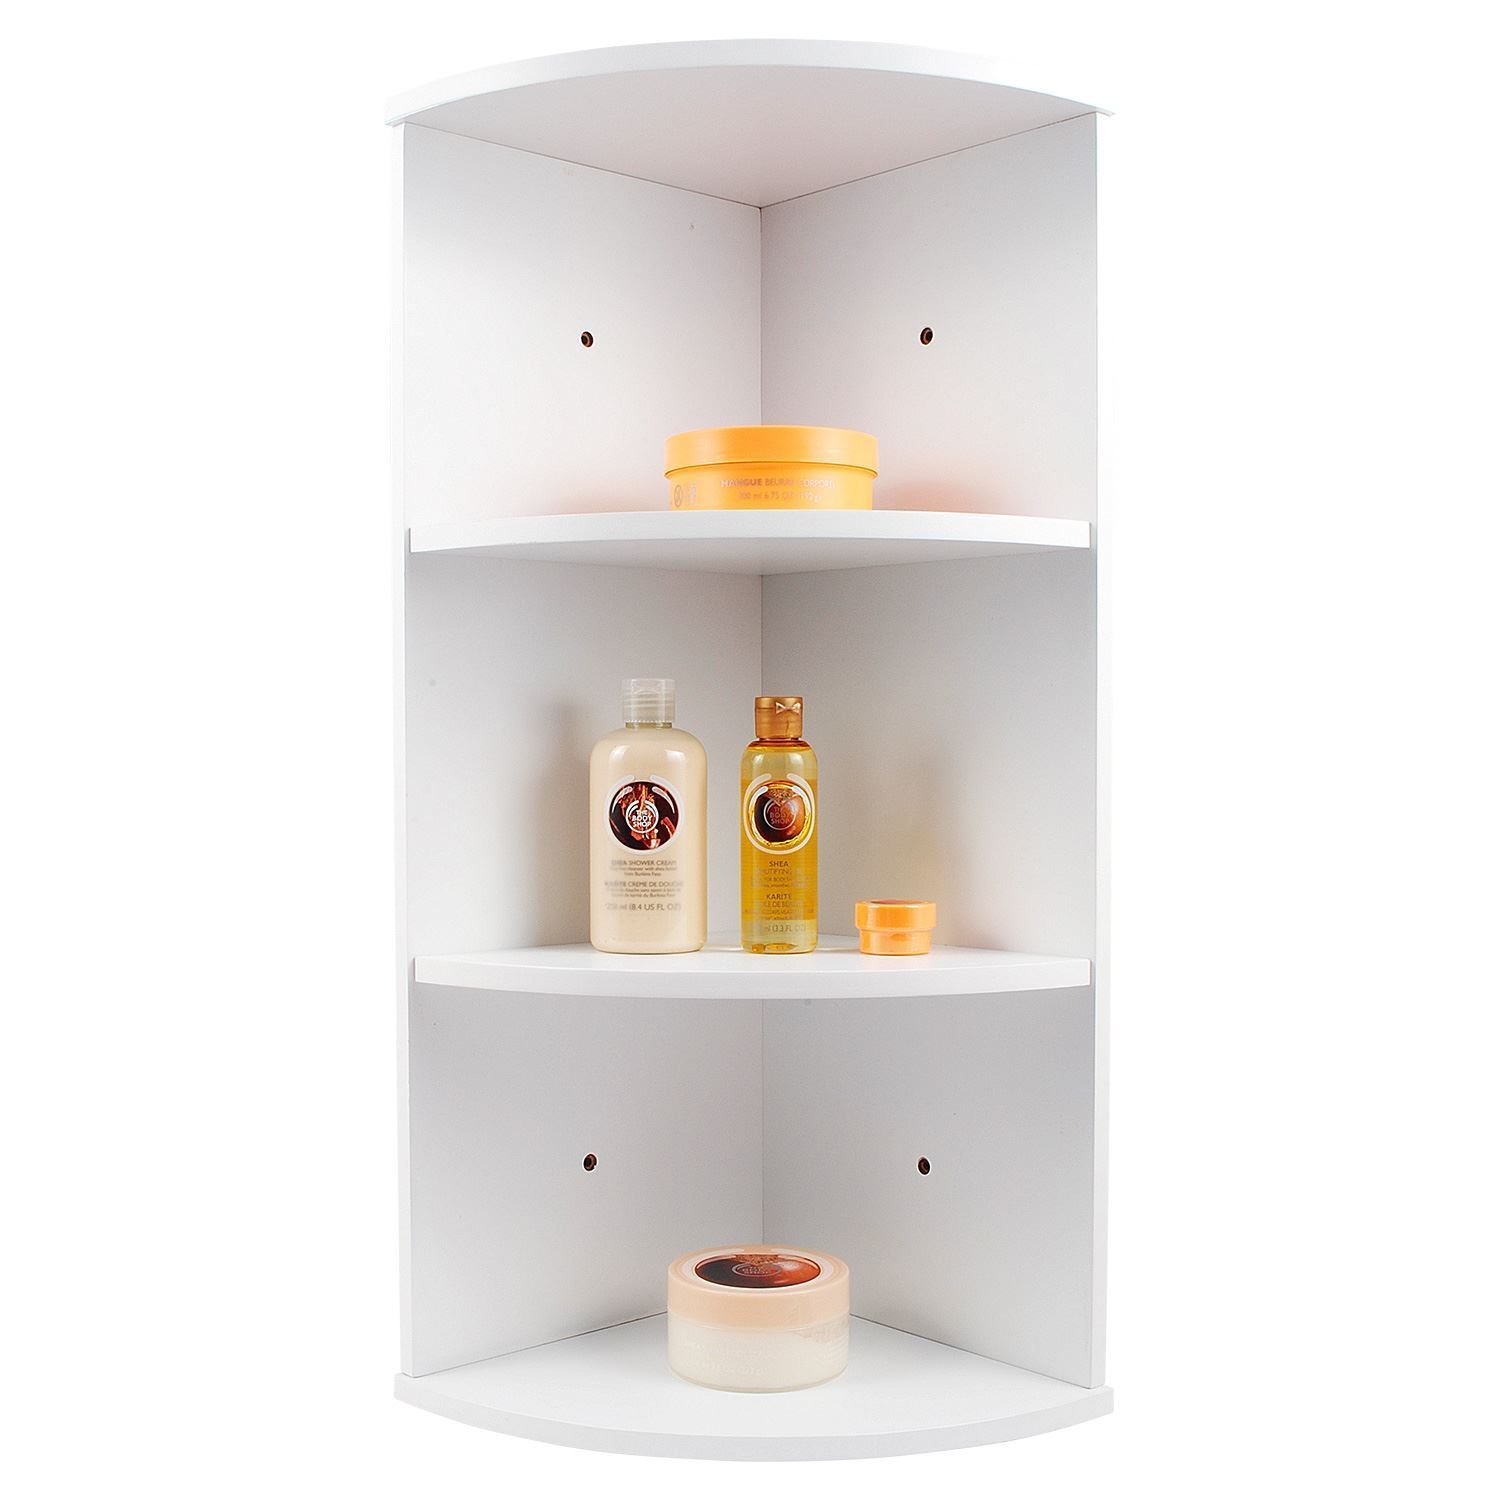 WHIITE WOODEN 3 TIER CORNER WALL MOUNTED BATHROOM STORAGE SHELVING UNIT  eBay